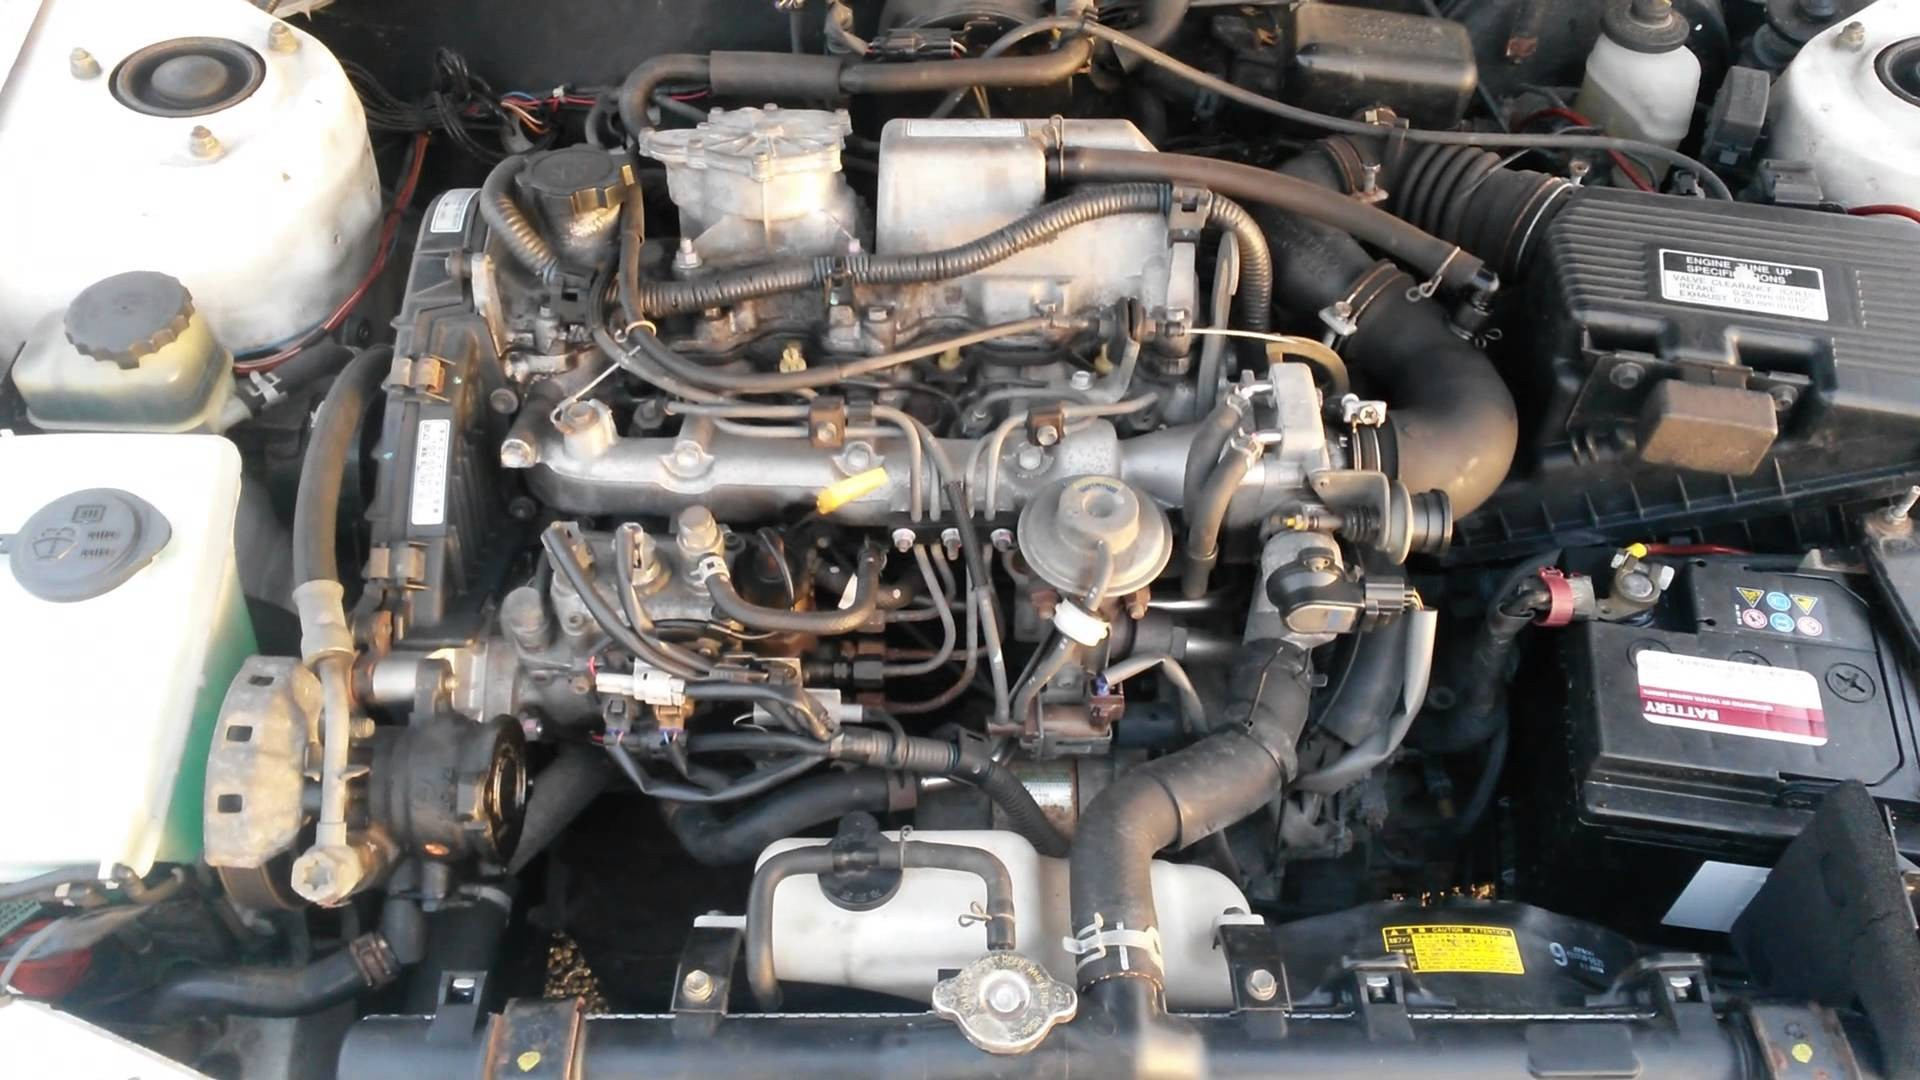 Toyota Corolla Engine Diagram Hot toyota Corolla E11 2 0d 2ce Start Up Specs and Review – toyota Of Toyota Corolla Engine Diagram